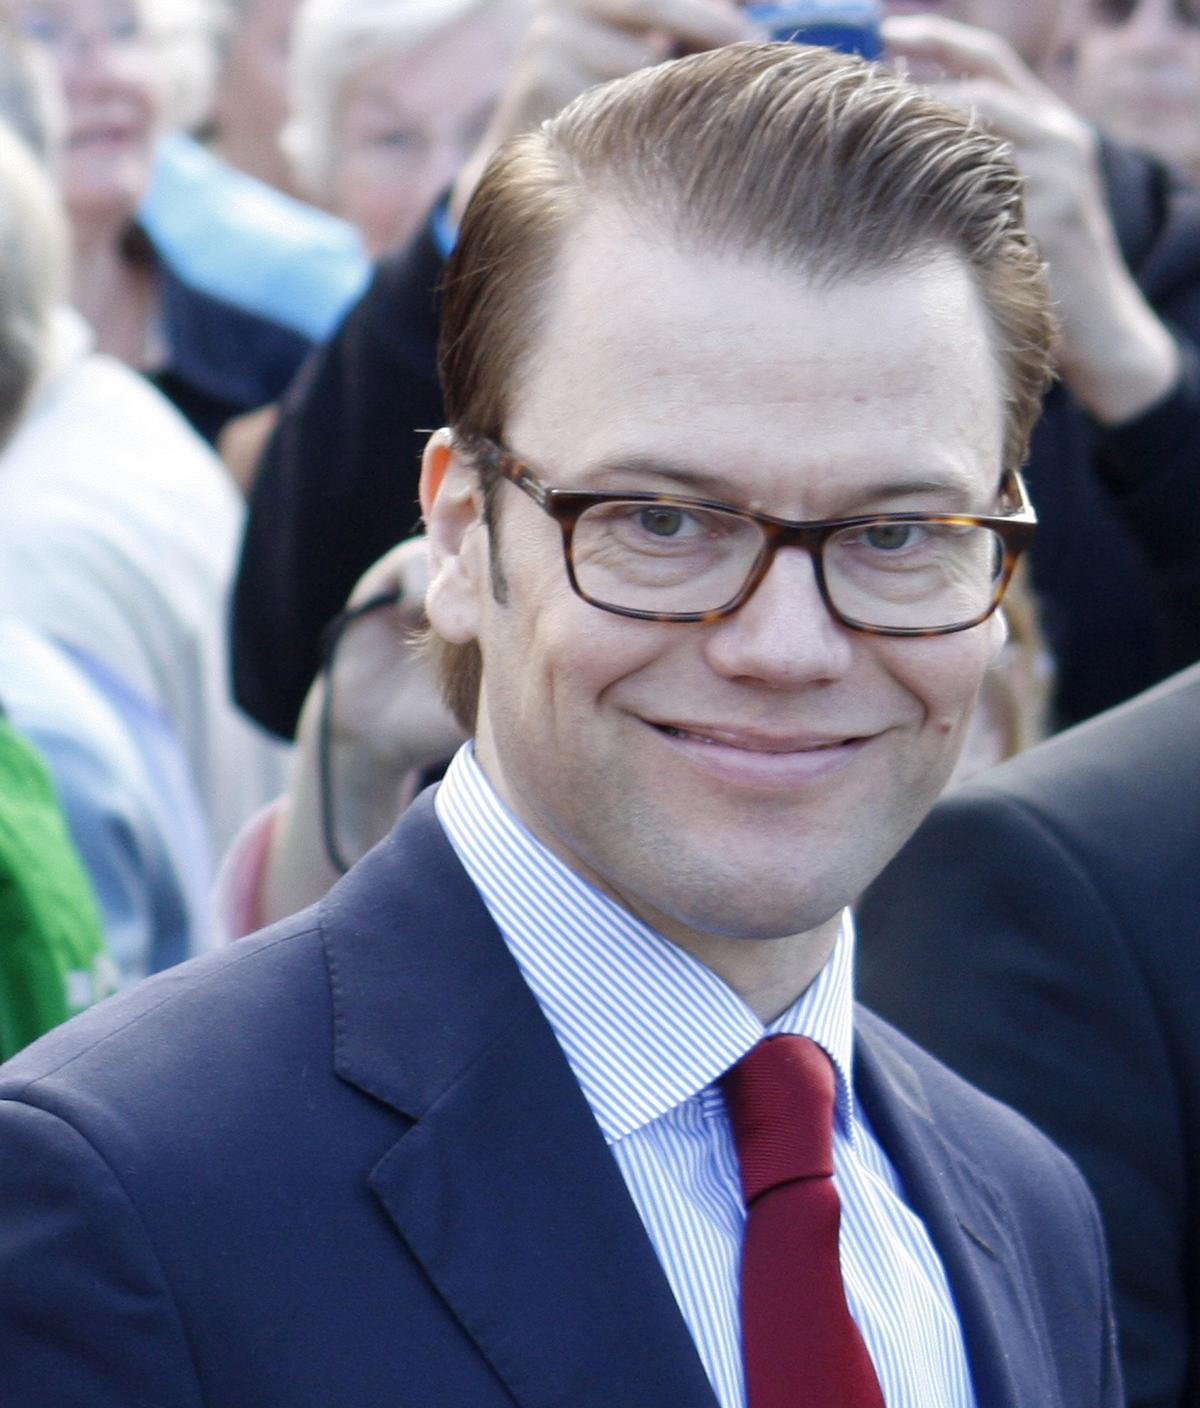 Balance was founded by Daniel Westling in 2006, who has since become Prince Daniel after marrying Swedish Crown Princess Victoria in 2010 / Shutterstock